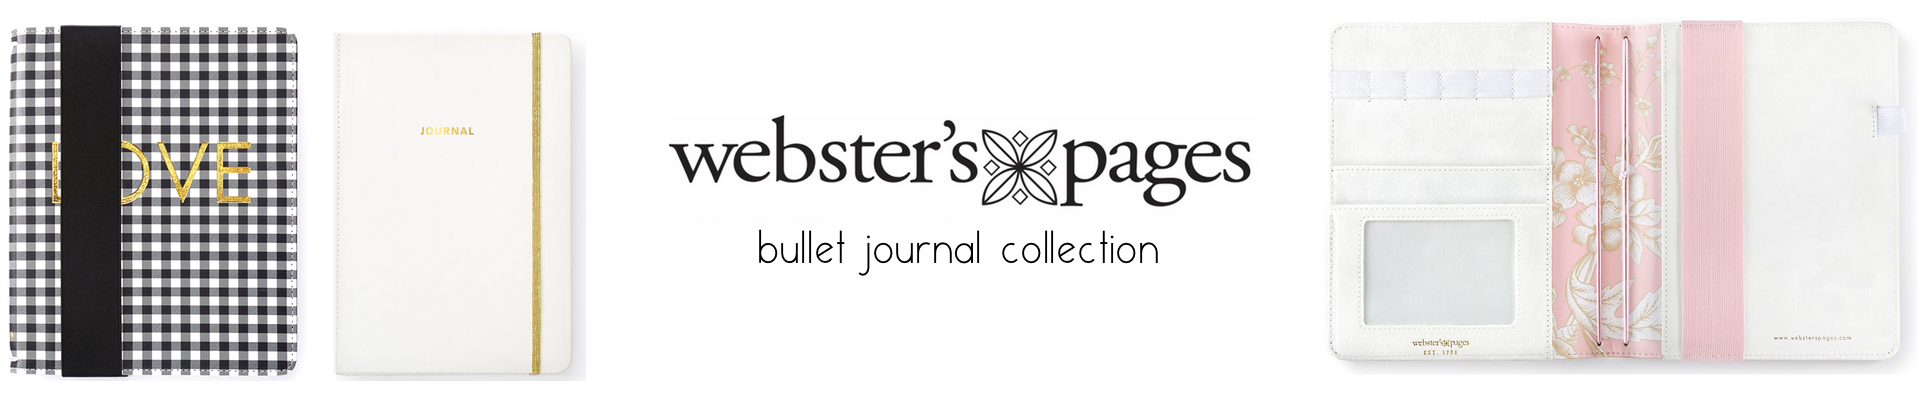 WEBSTER'S PAGES A5 TRAVELER'S NOTEBOOK COVERS / BULLET JOURNALS